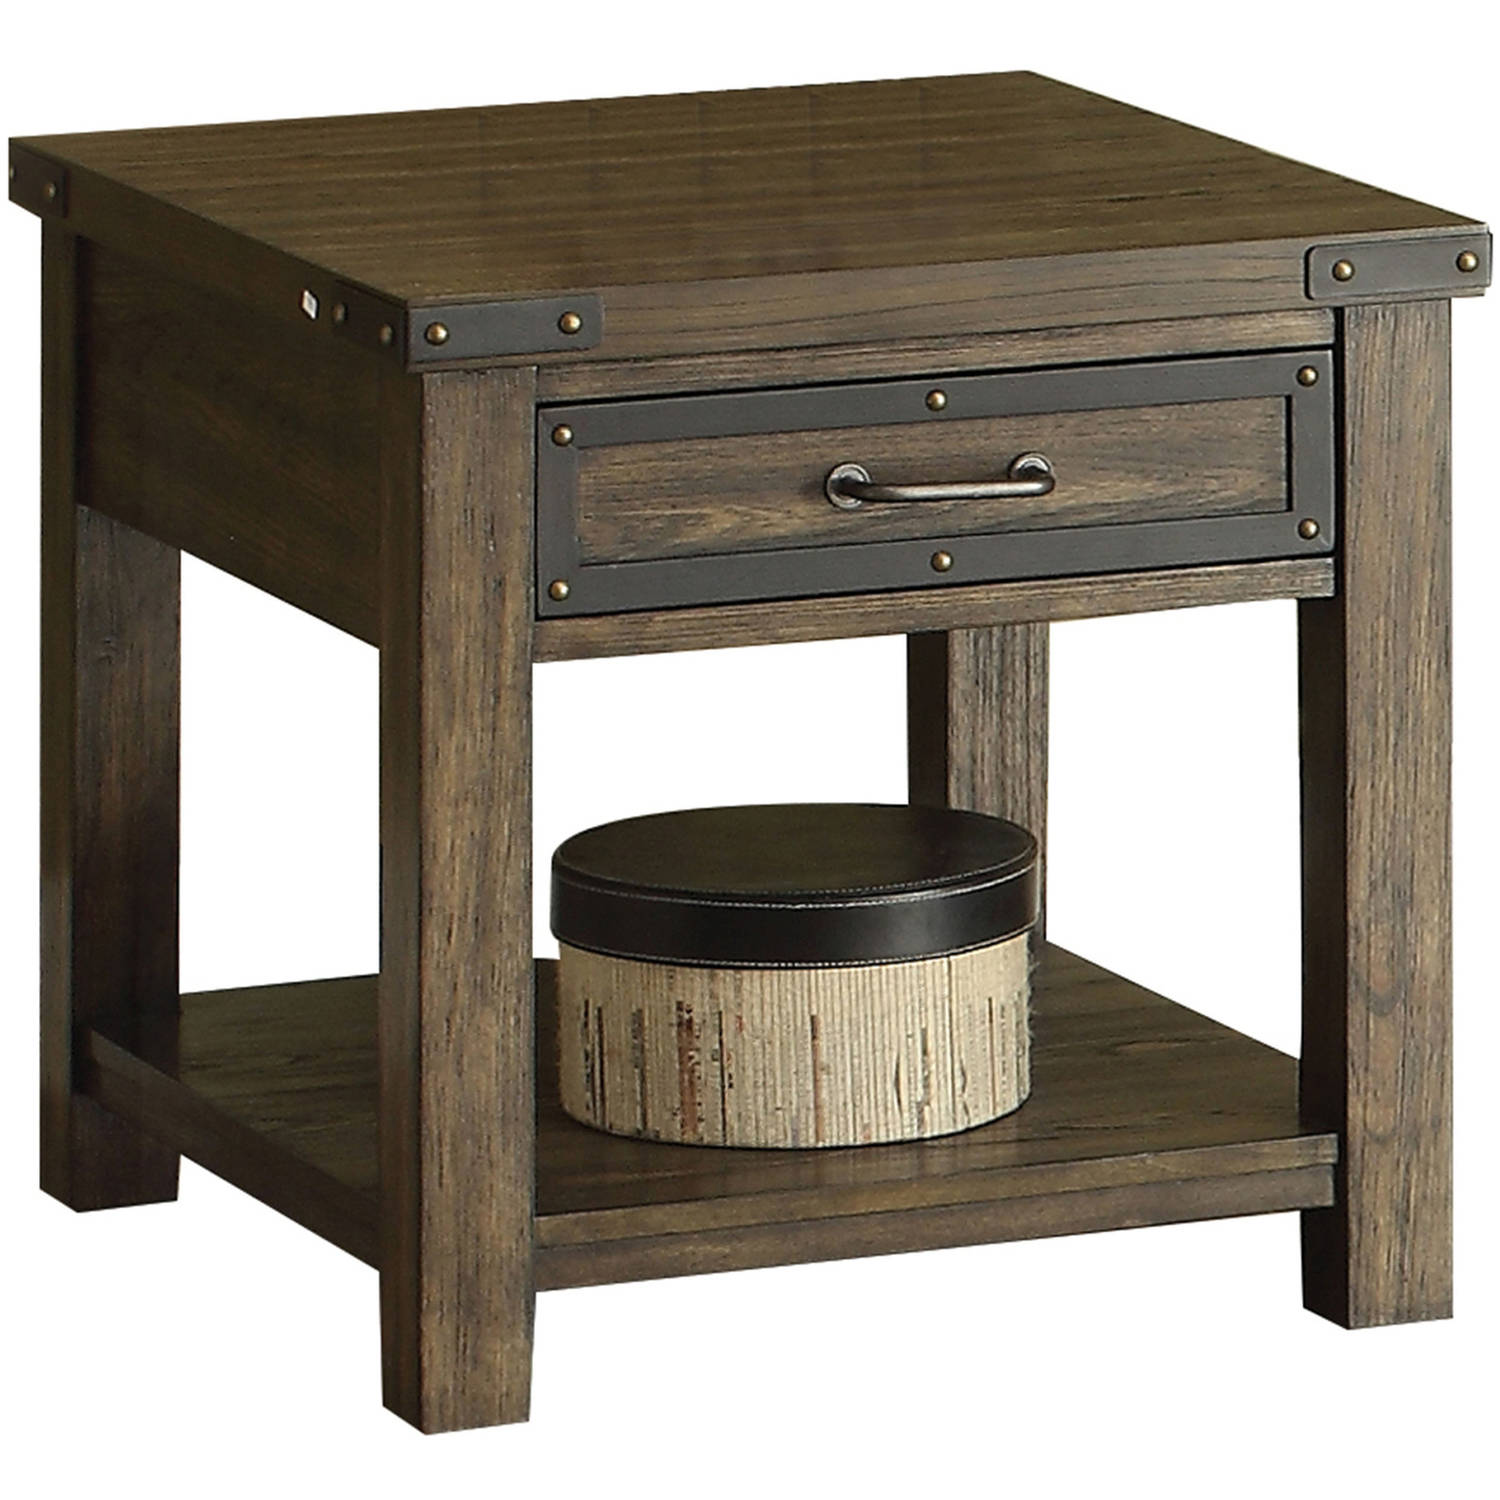 ACME Kailas End Table with Drawer, Weathered Dark Oak